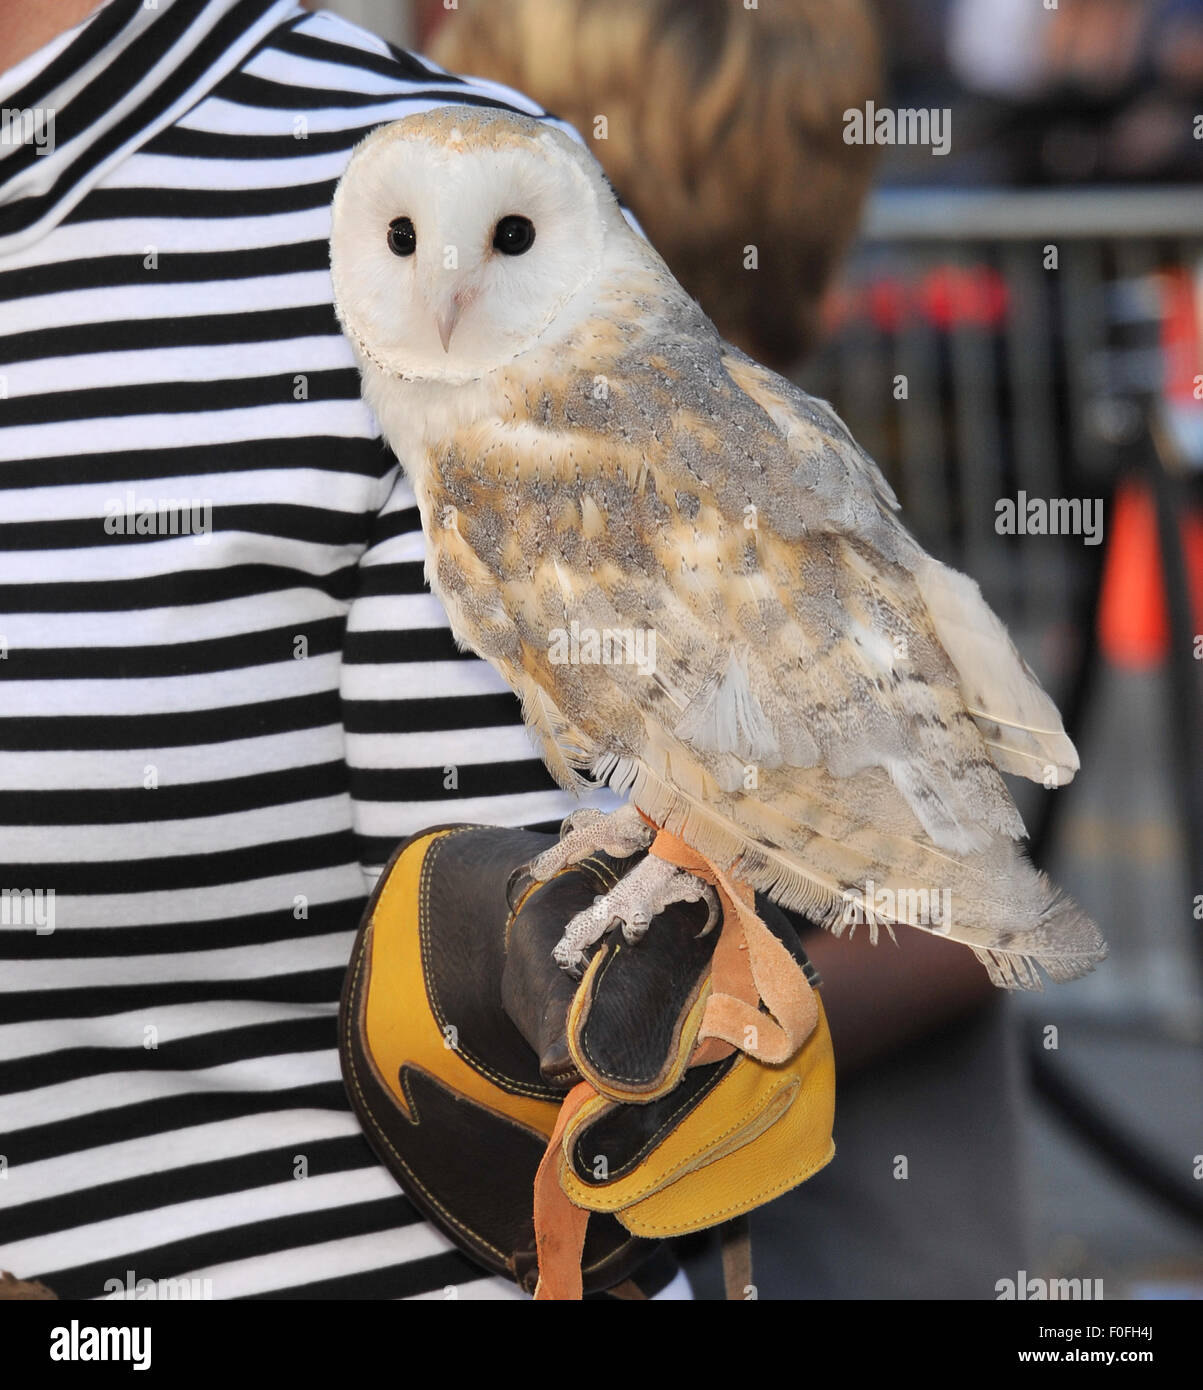 LOS ANGELES, CA - SEPTEMBER 19, 2010: Owl at the world premiere of 'Legends of the Guardians: The Owls of Ga'Hoole' - Stock Image